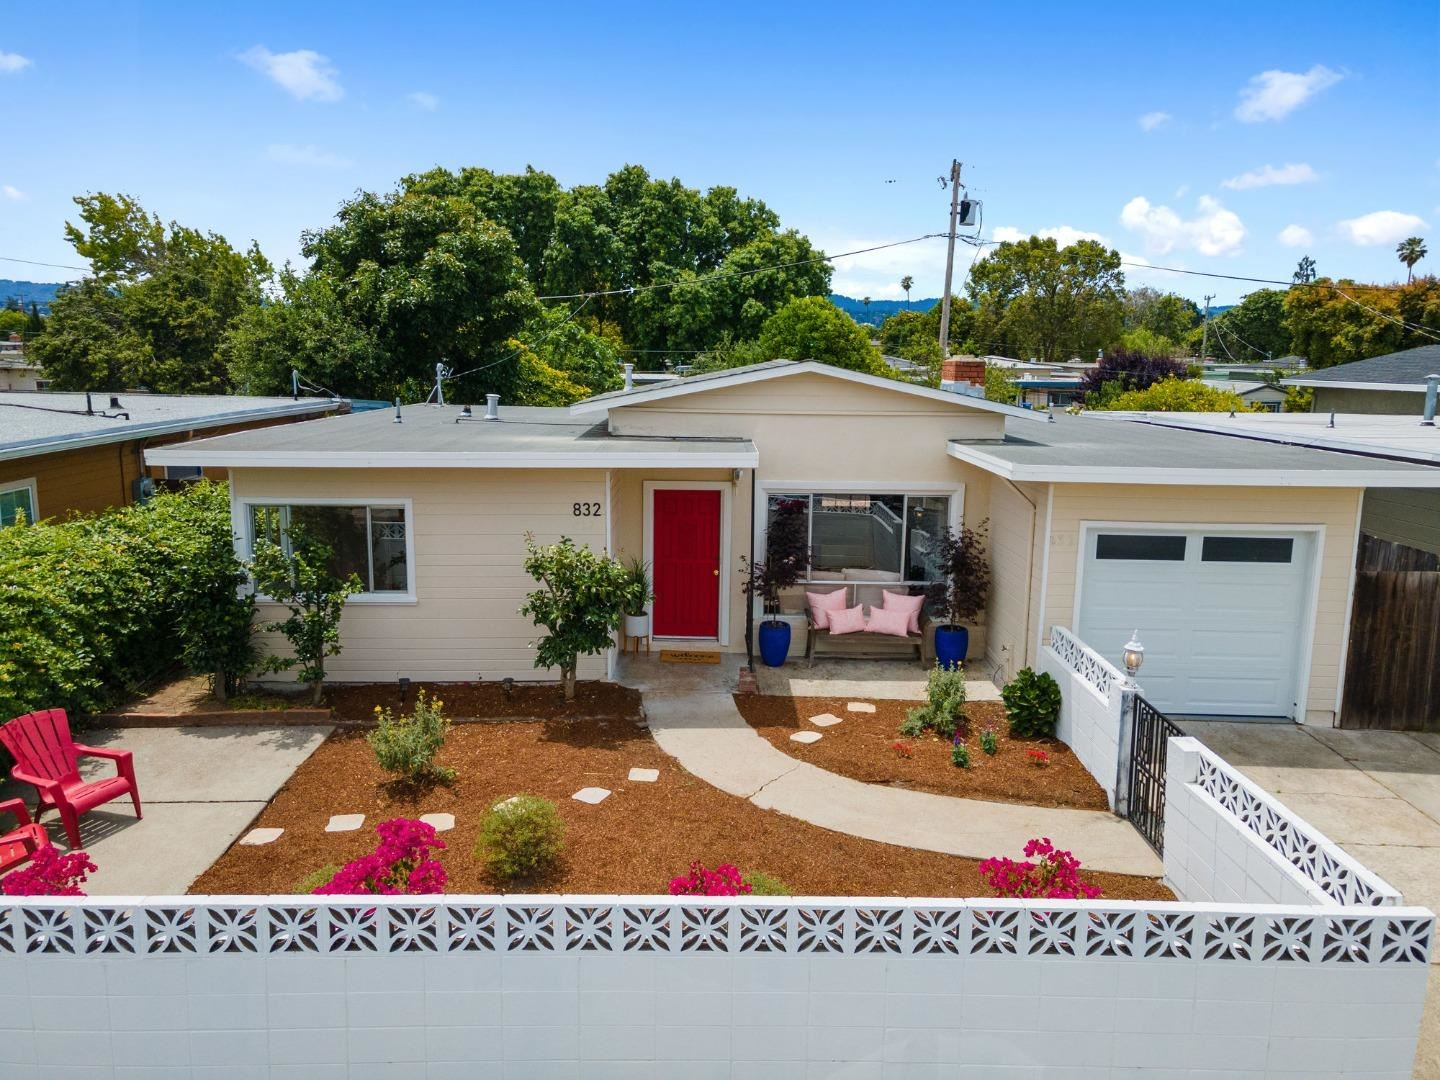 Photo for 832 Fallon AVE, SAN MATEO, CA 94401 (MLS # ML81798921)